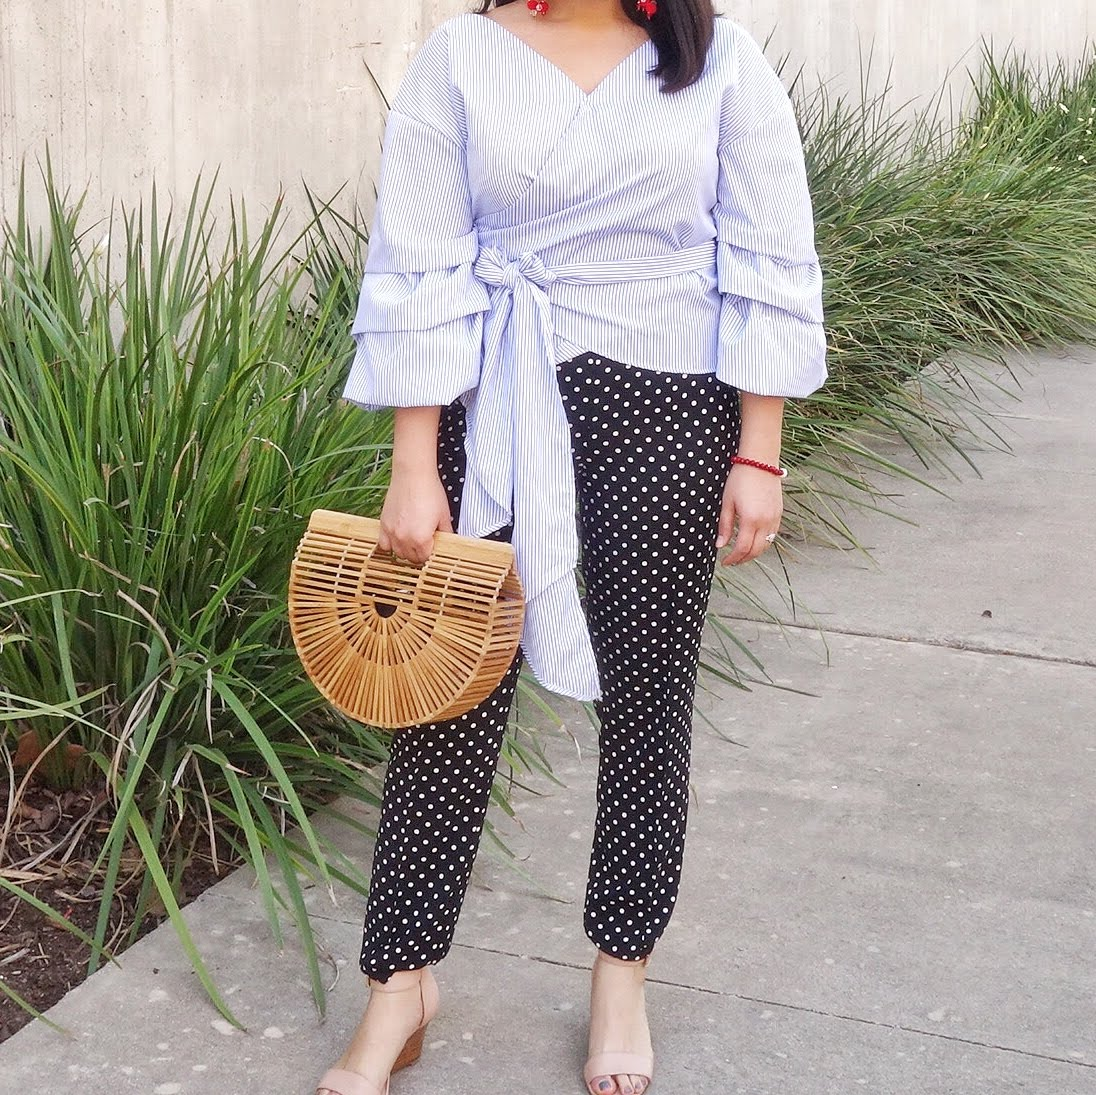 Mix Prints [Polka Dots and Stripes]